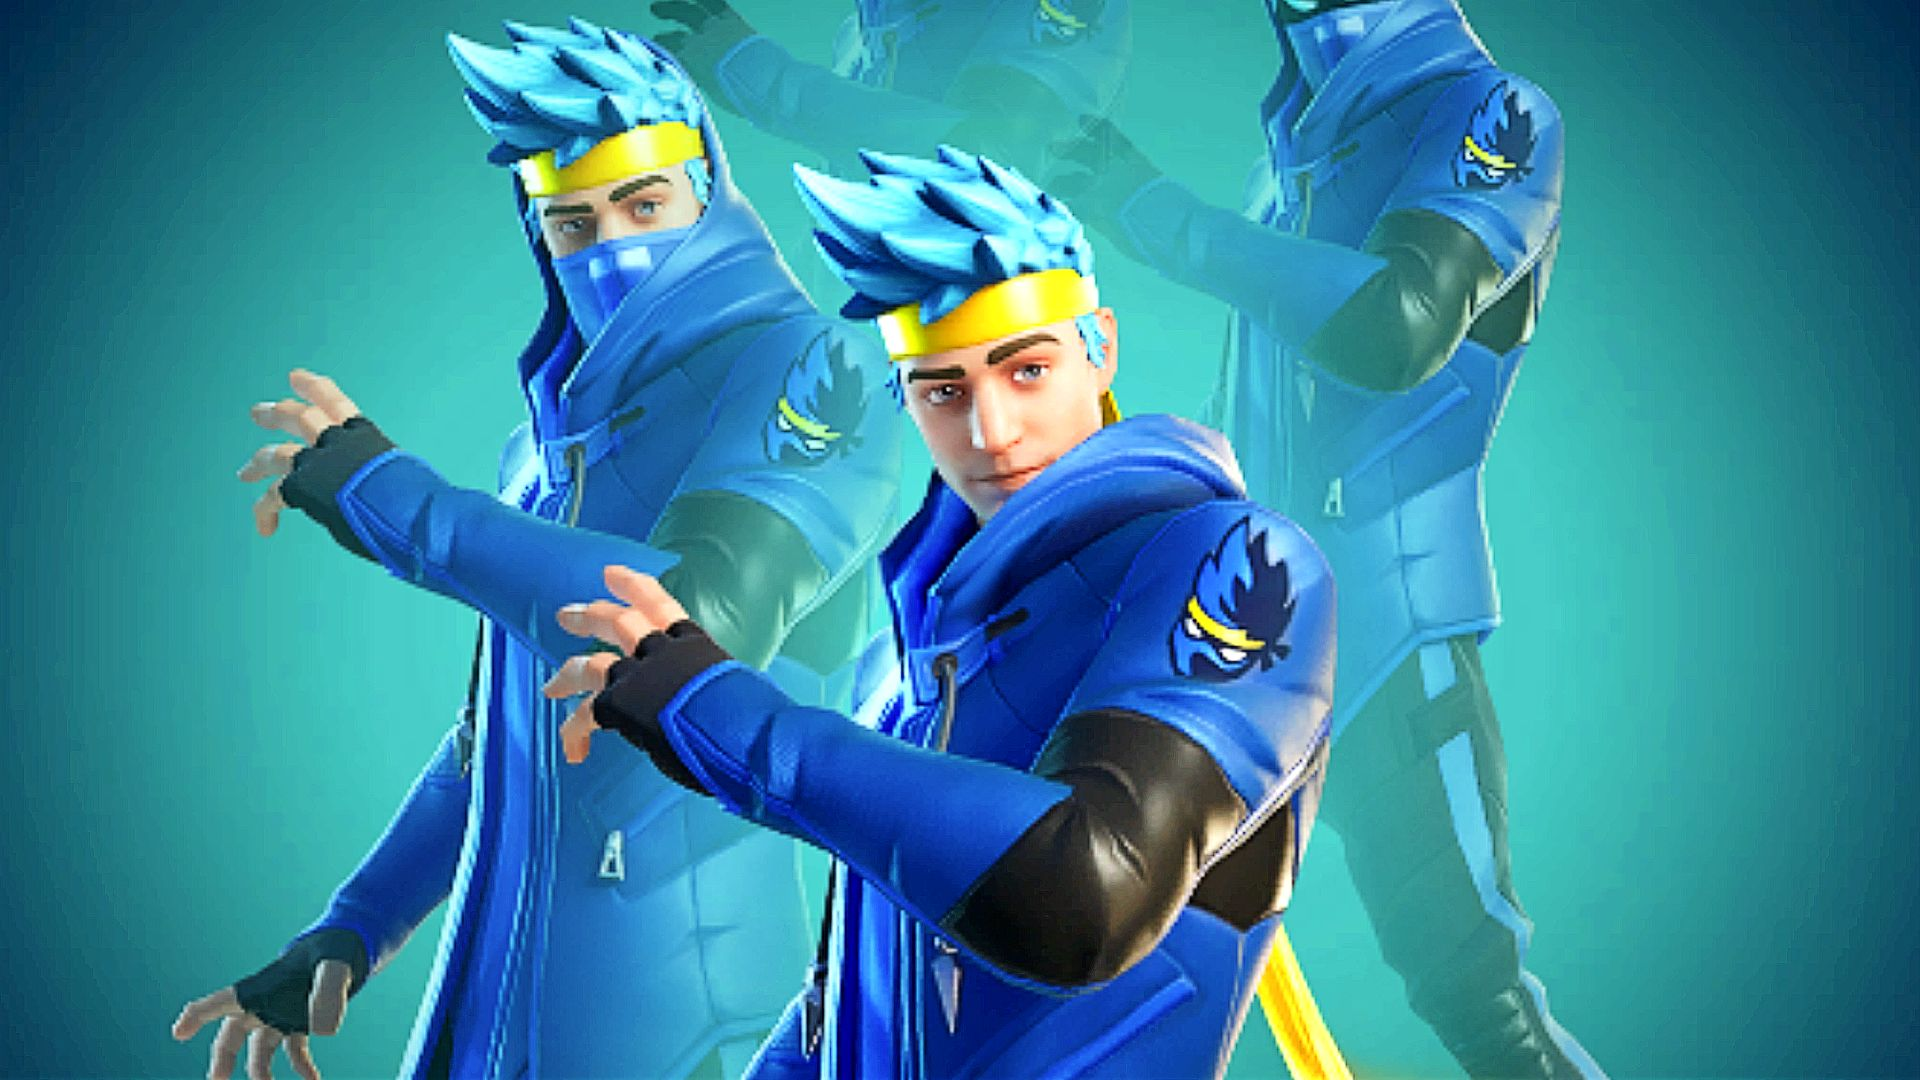 Fortnite Skins To Look Out For Fortnite Is Finally Getting An Official Ninja Skin Pcgamesn